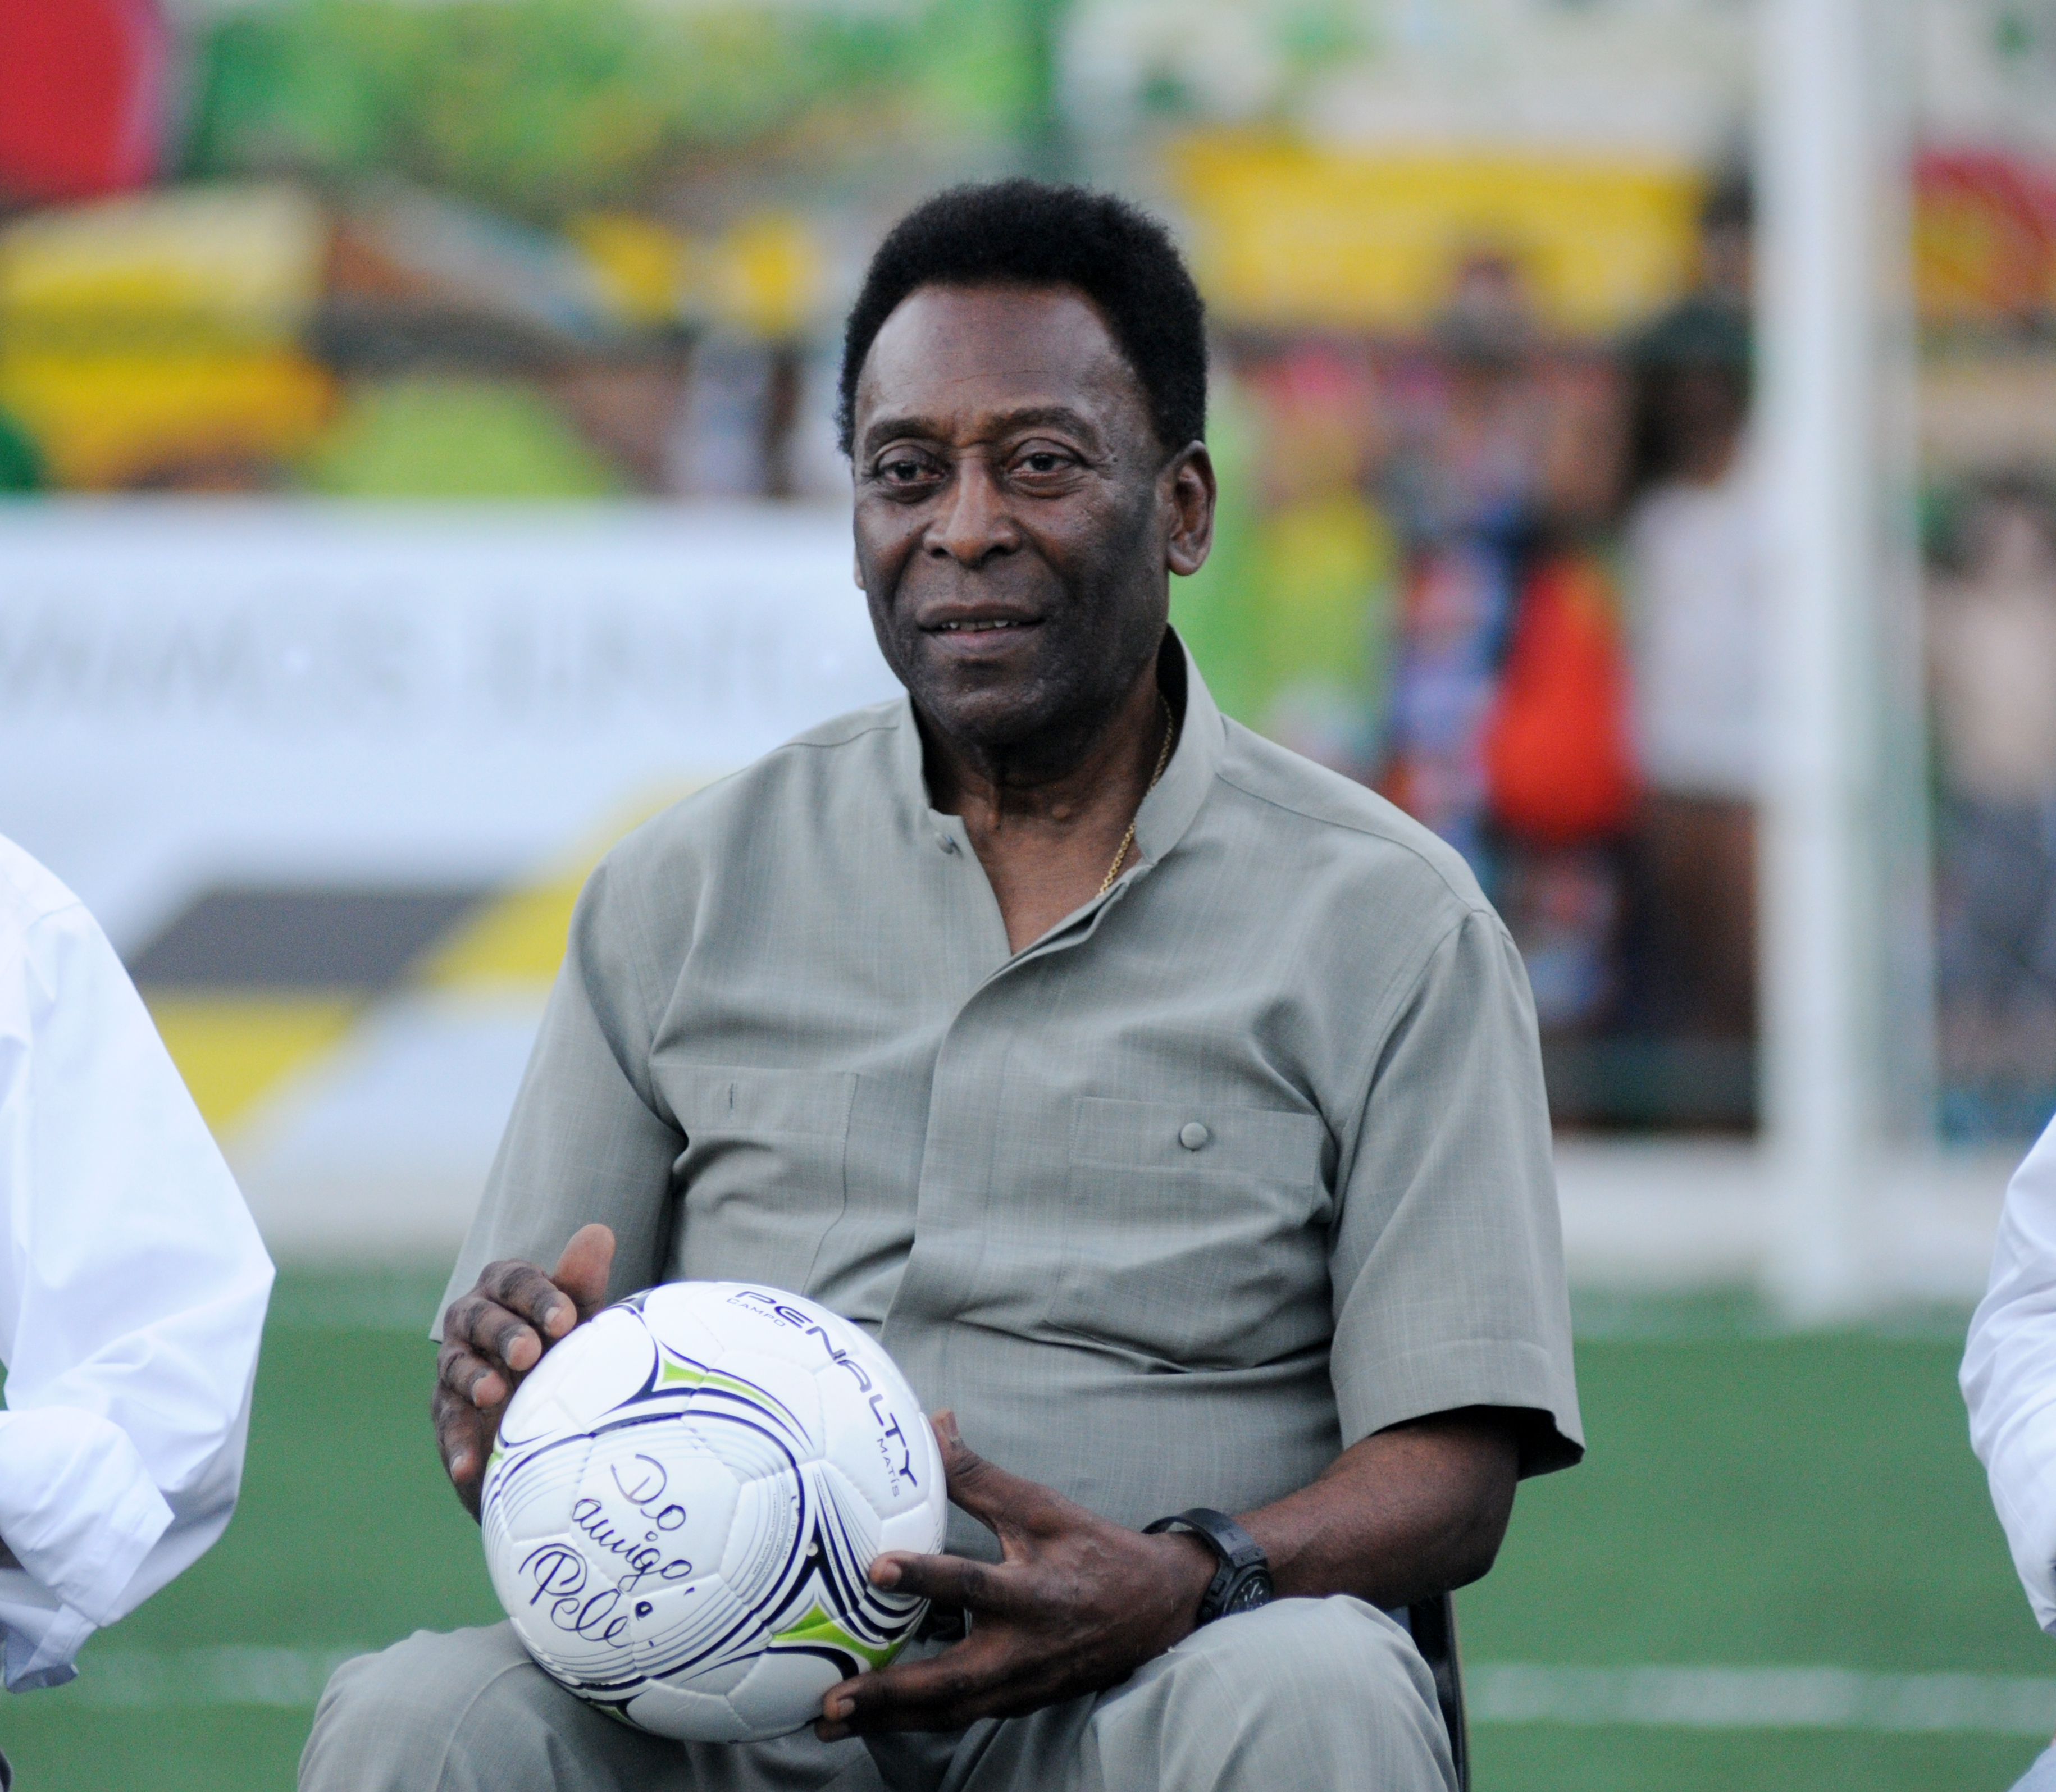 80-Year-Old Soccer Star Pelé Is Still in Intensive Care But Looks Forward to Hitting the Field Again Soon